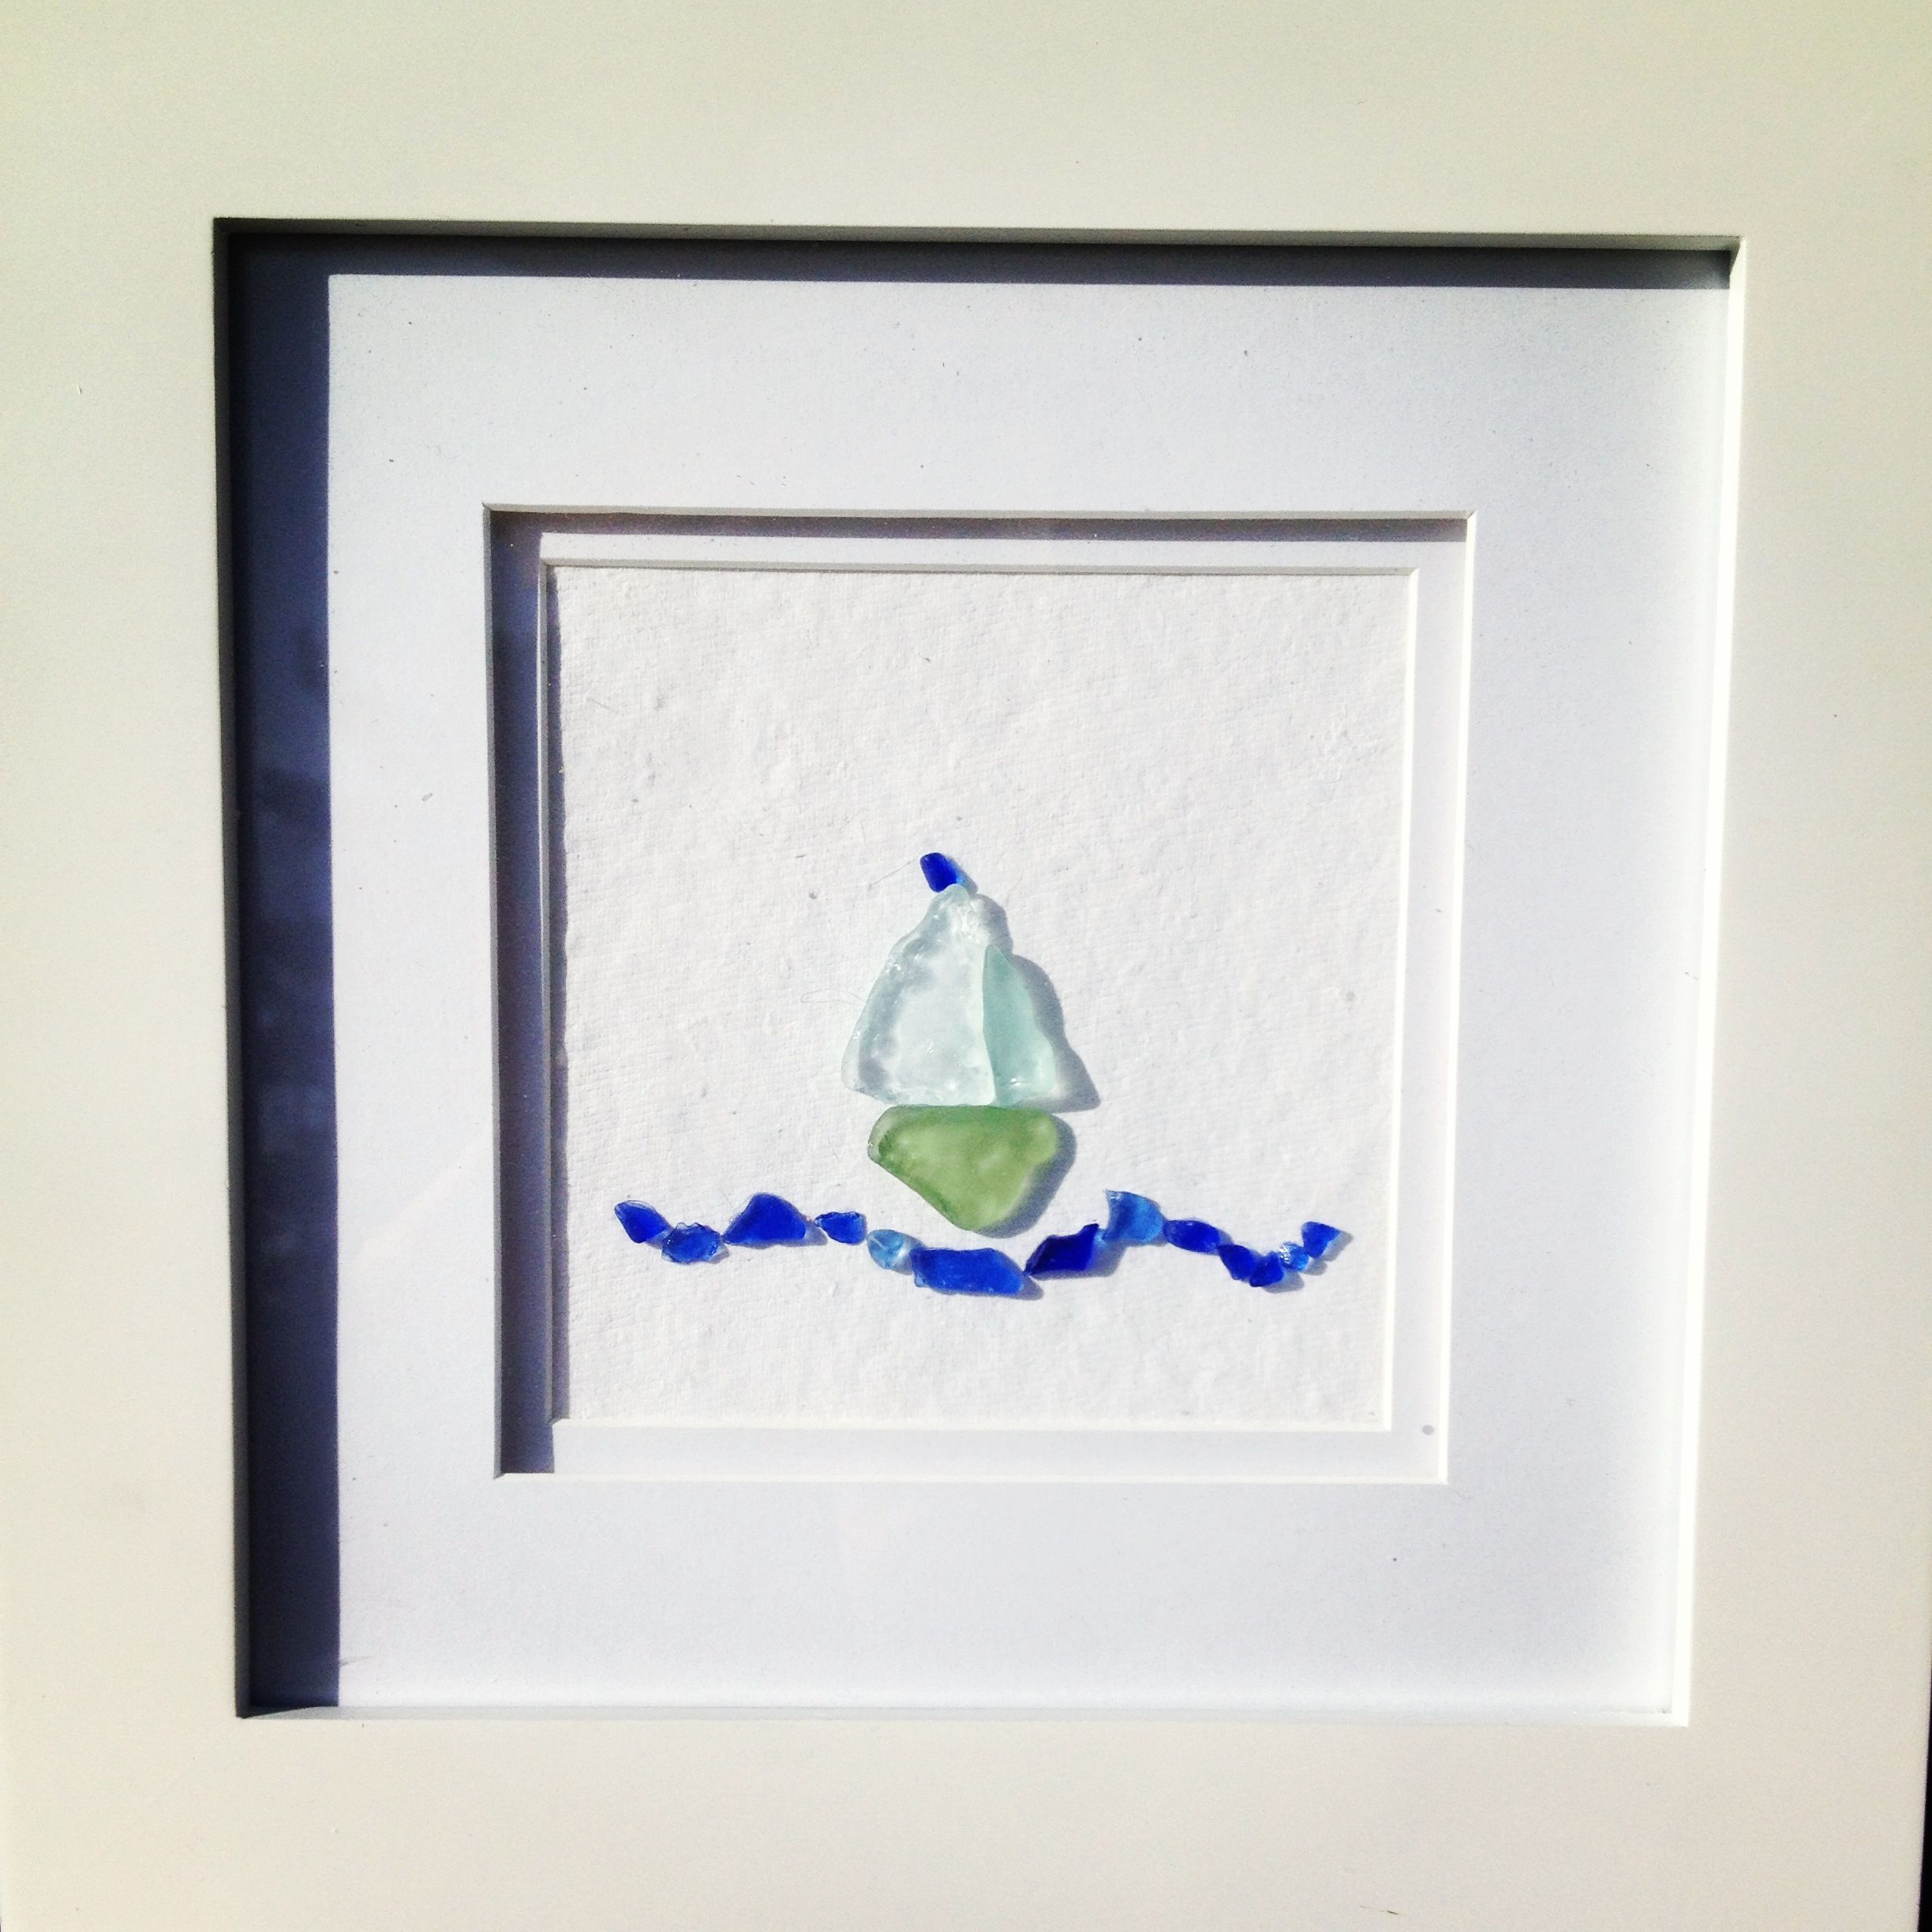 Framed Beach Glass The Frame Was The Hardest To Find But Finally Found The Perfect Frame At Michaels Glued The Be With Images Beach Glass Crafts Pebble Art Sea Glass Art